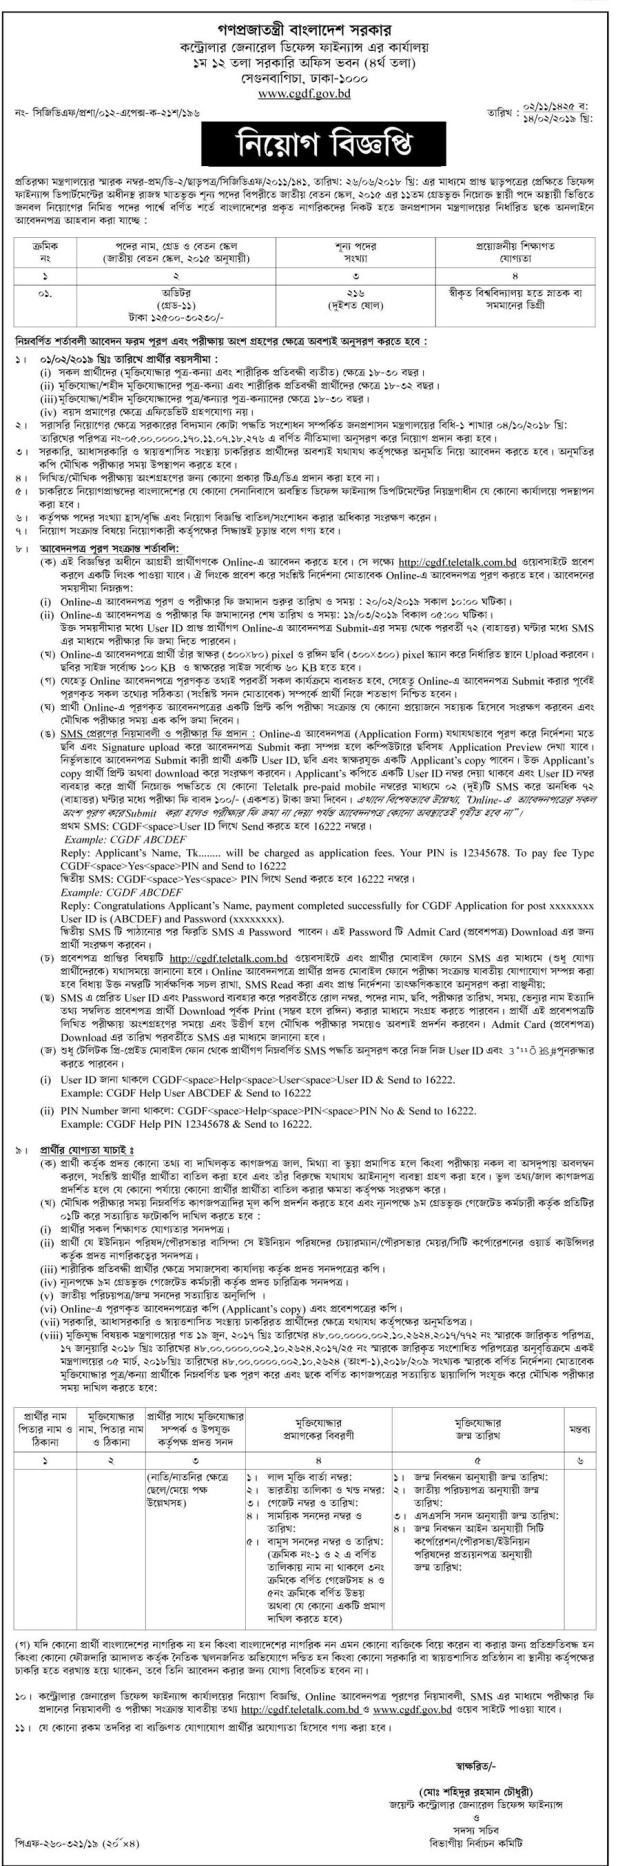 Office Of The Controller General Of Accounts Job Circular 2019